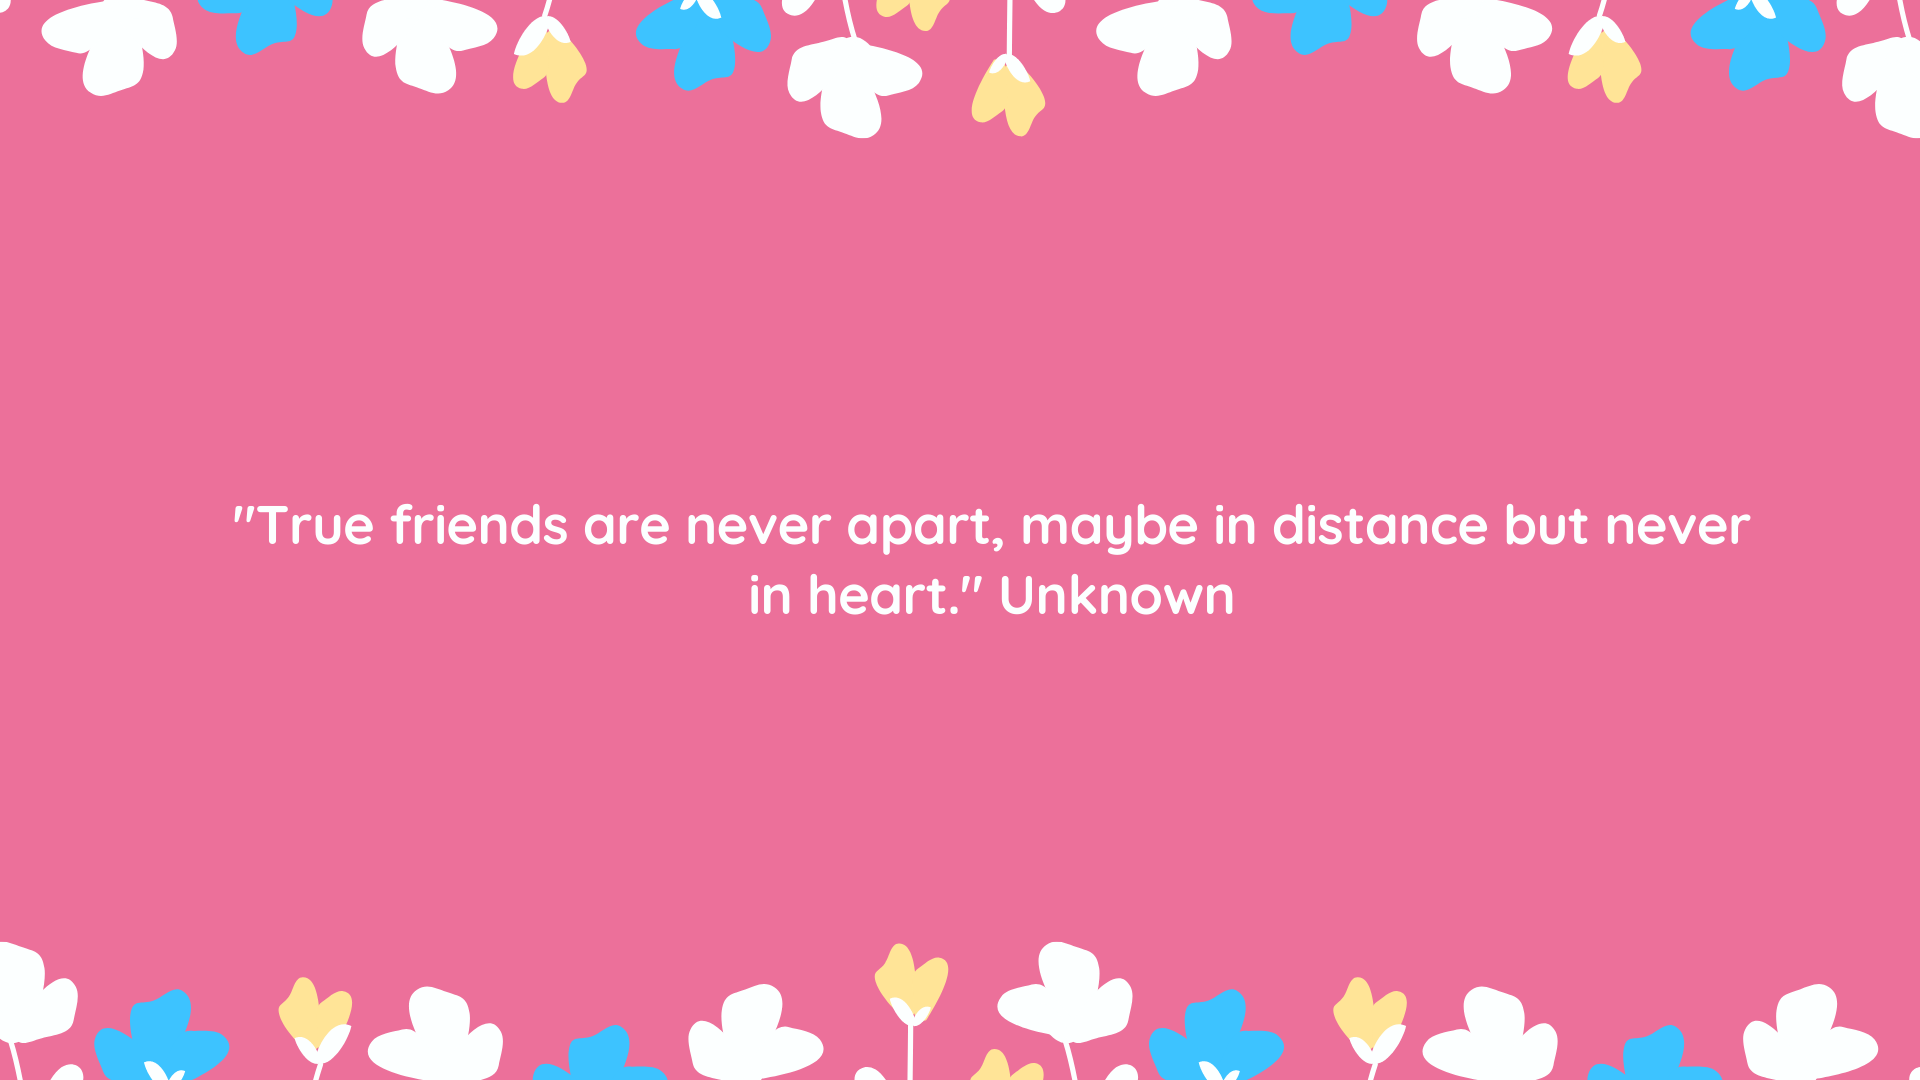 """True friends are never apart, maybe in distance but never in heart."" Unknown"